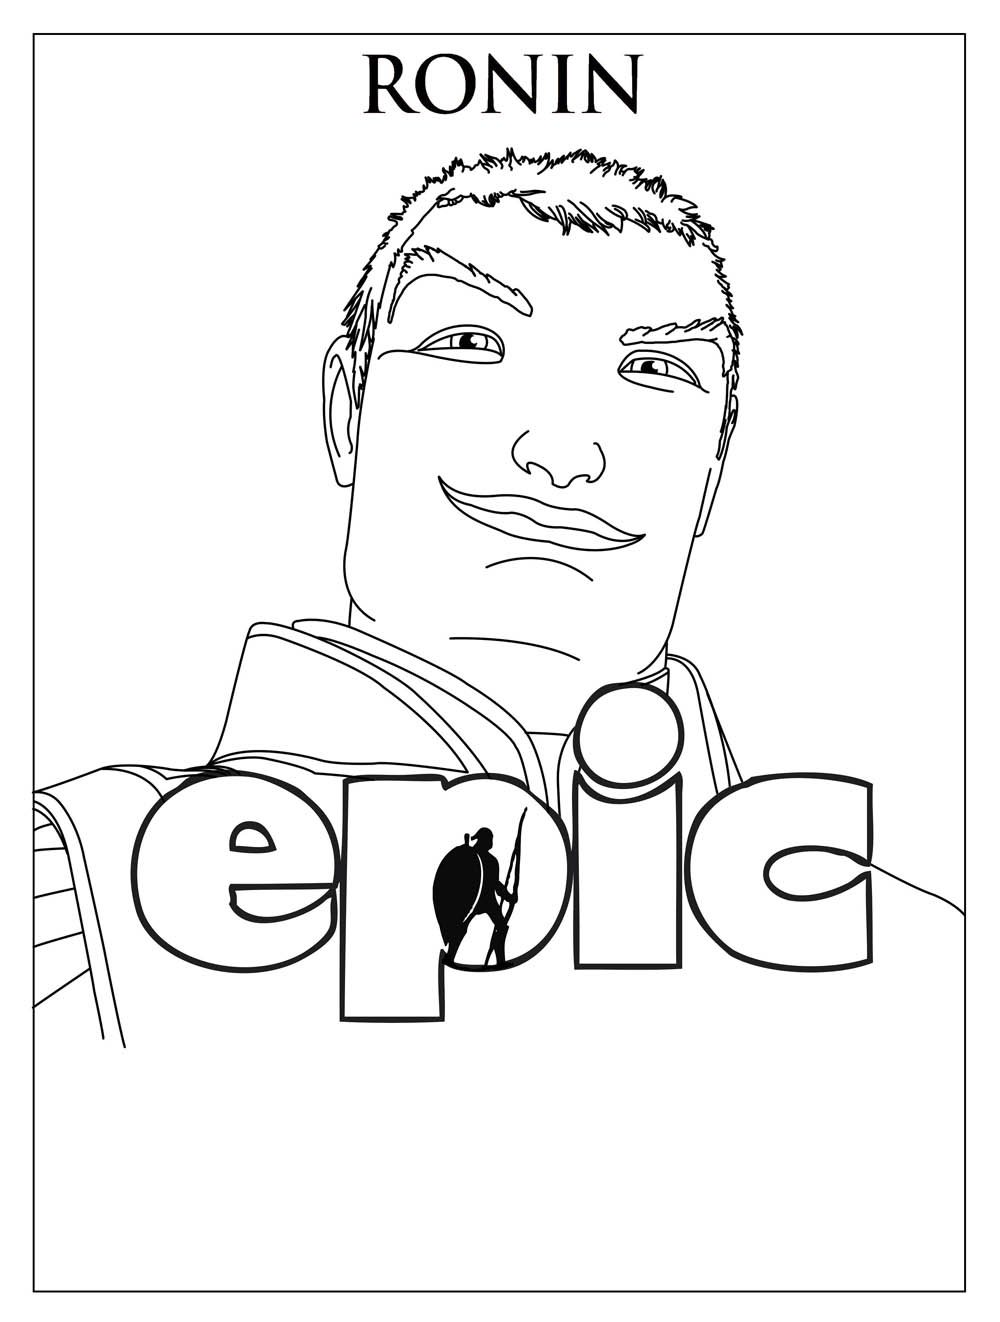 Free Epic coloring page to print and color